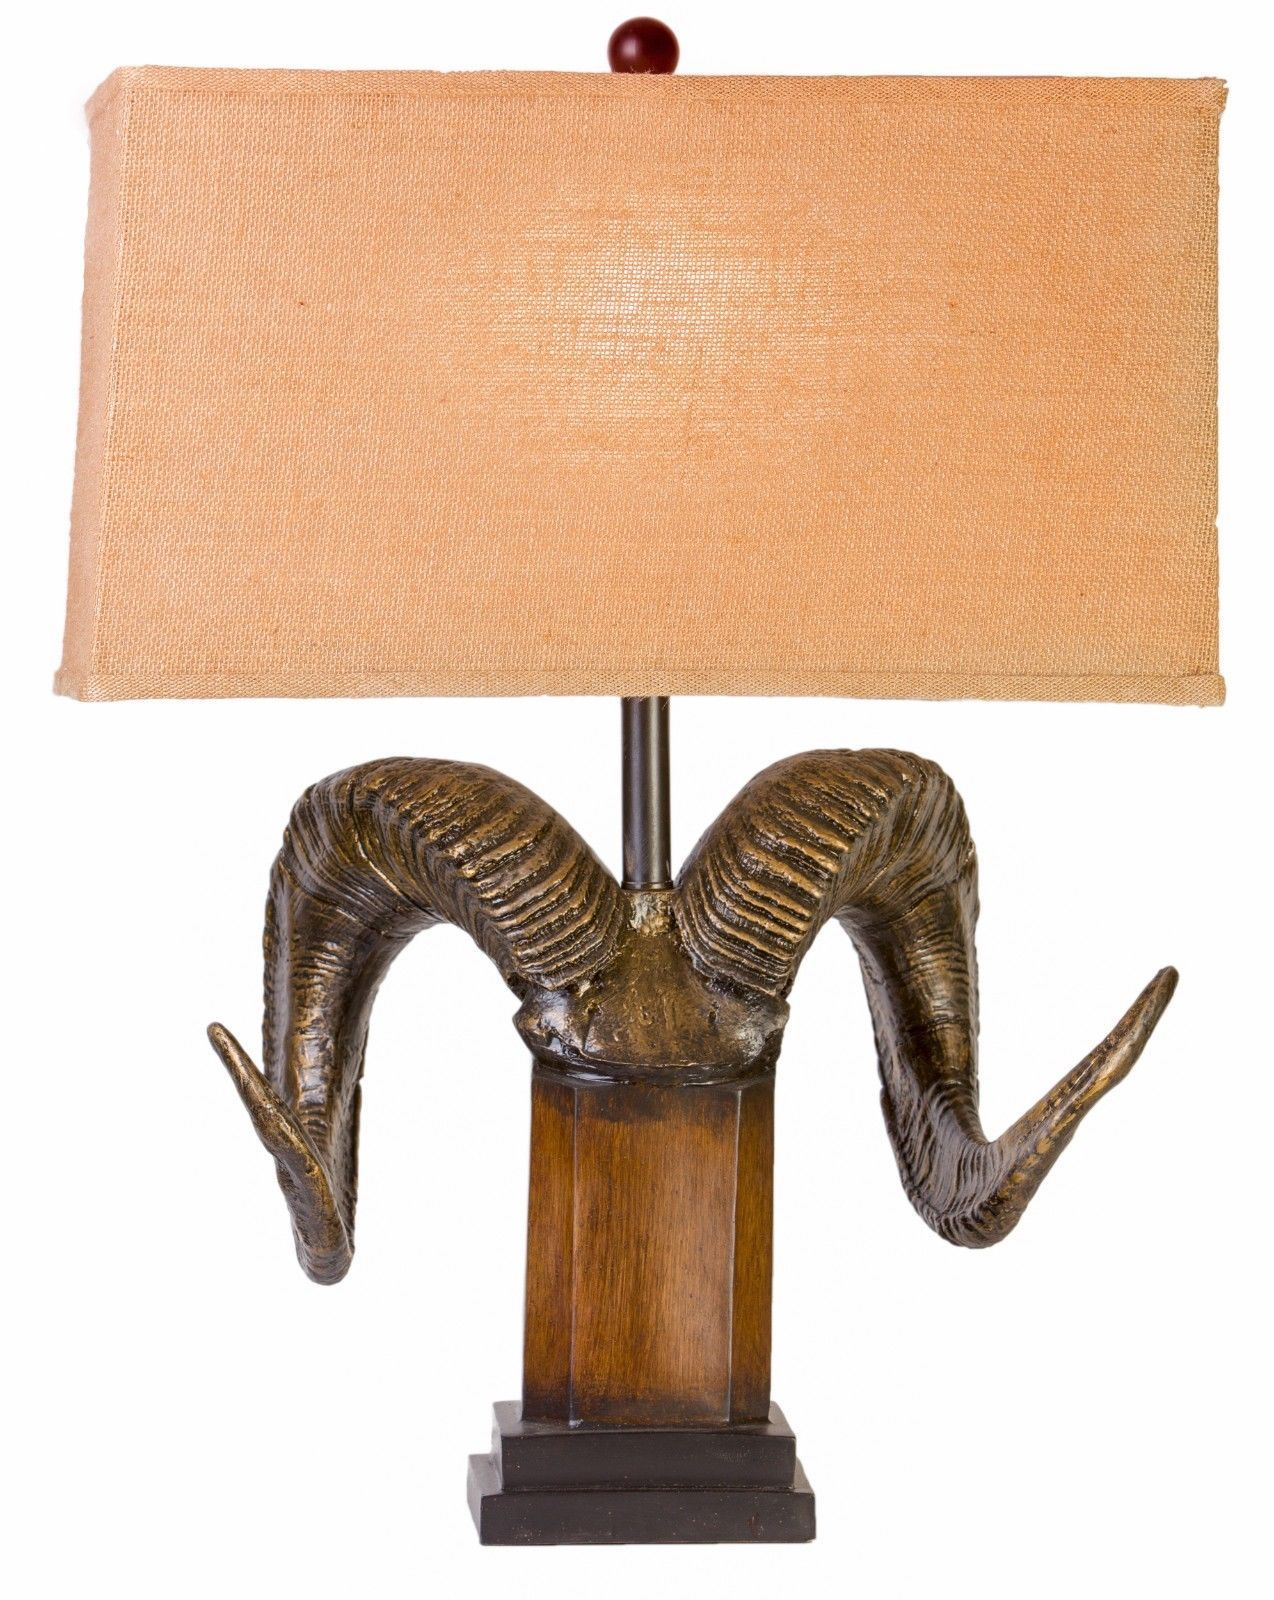 Ram's Horn Table Lamp Bighorn Sheep Antler Rocky Mountain Rustic Cabin Lodge